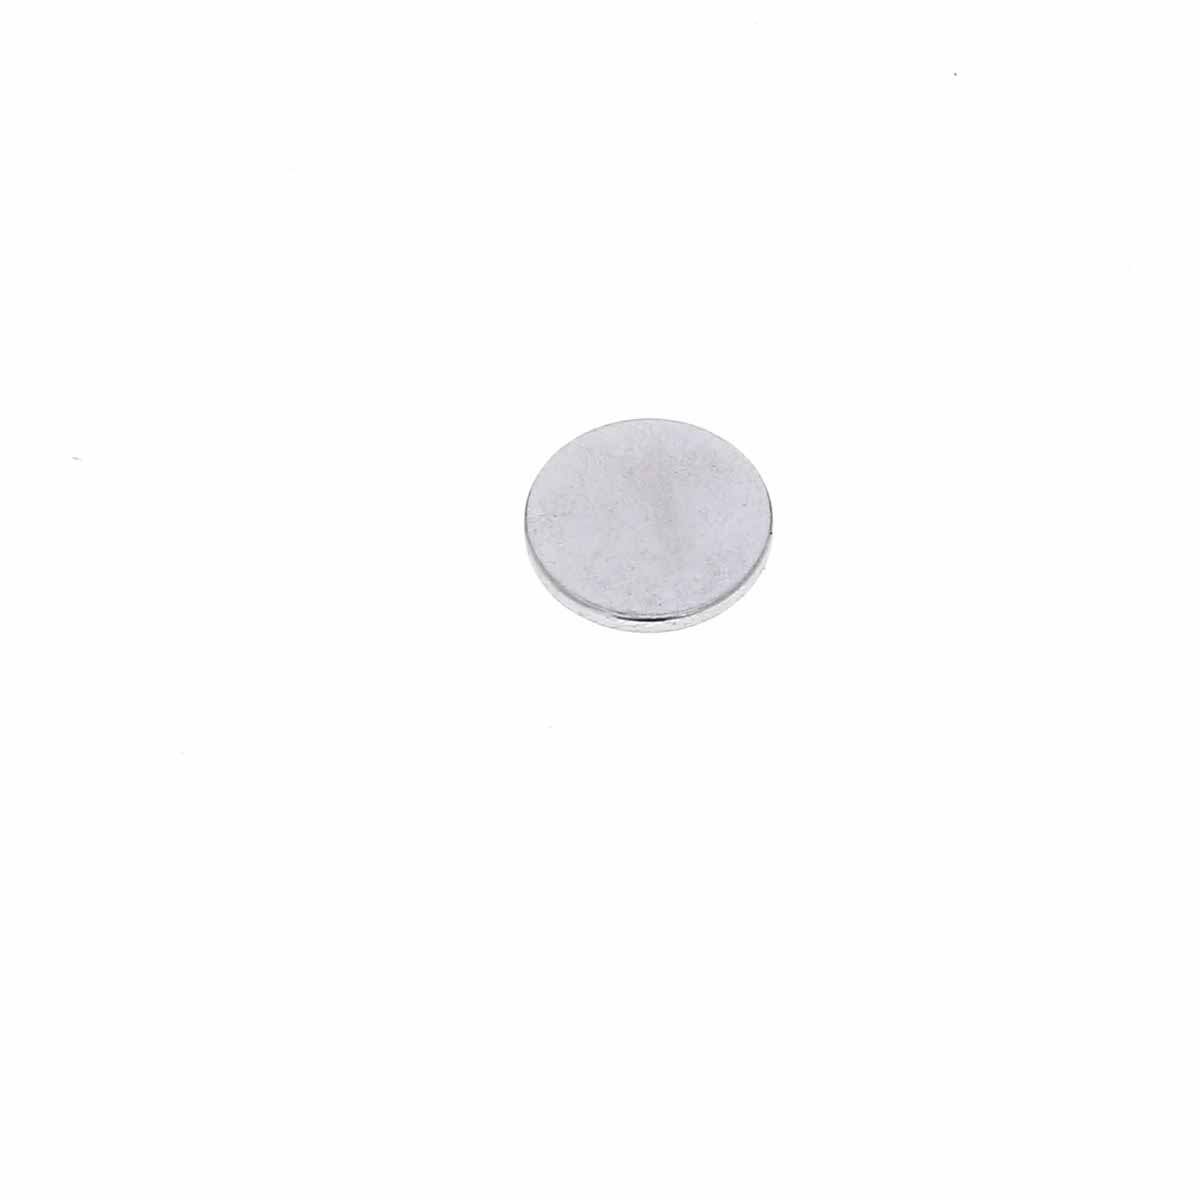 Aimant rond - 9,5 x 1 mm